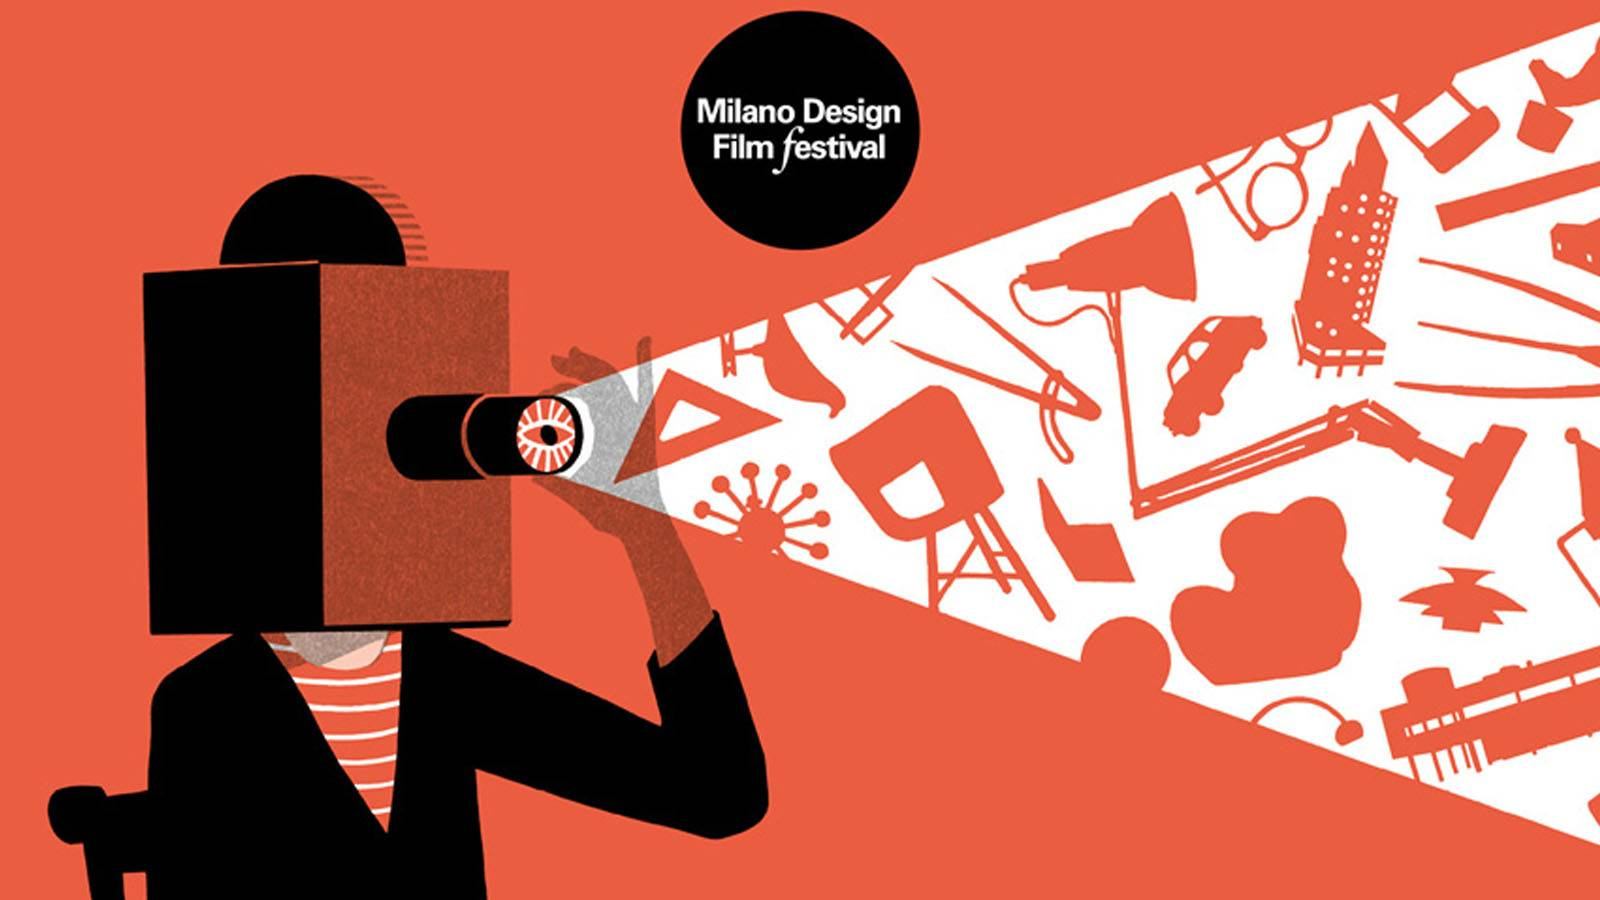 Poster of Milan Design Film Festival